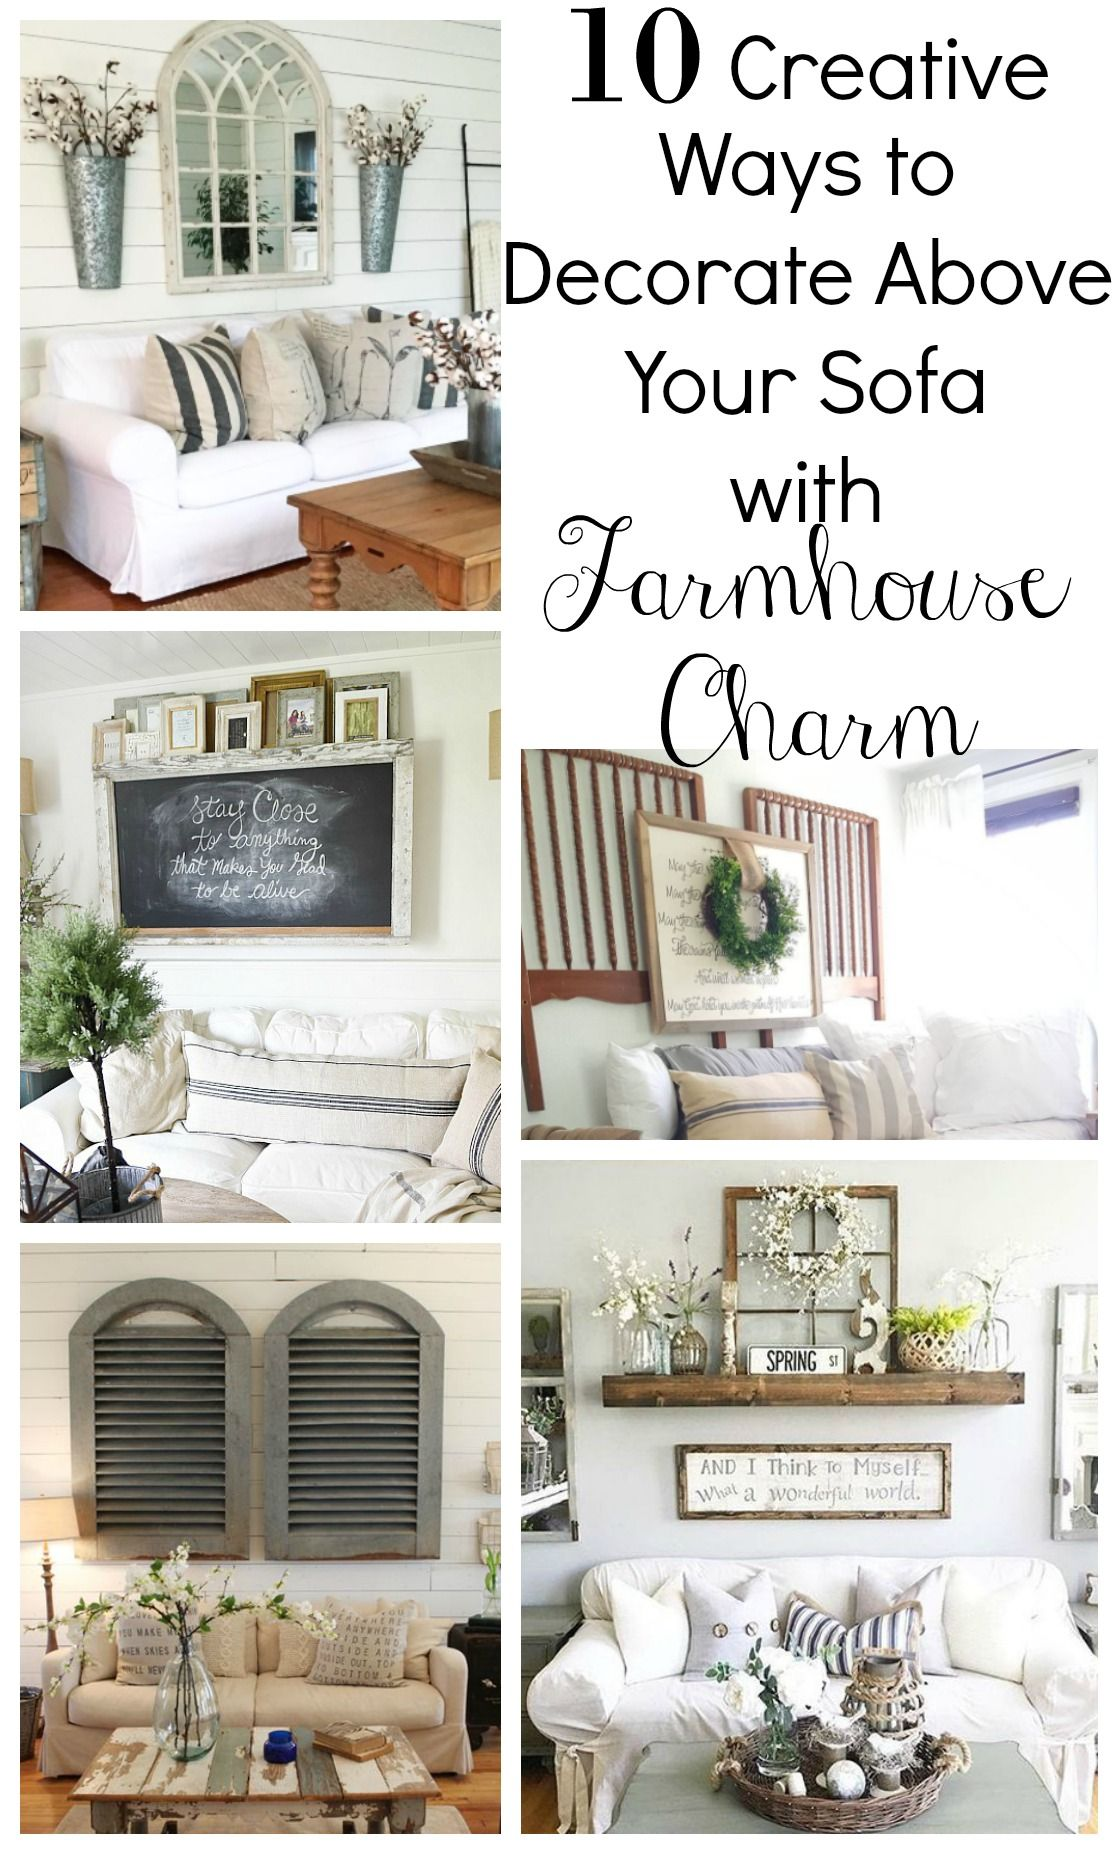 Creative Ways To Decorate Above The Sofa Sarah Joy Farm House Living Room Family Room Wall Decor Farmhouse Decor Living Room